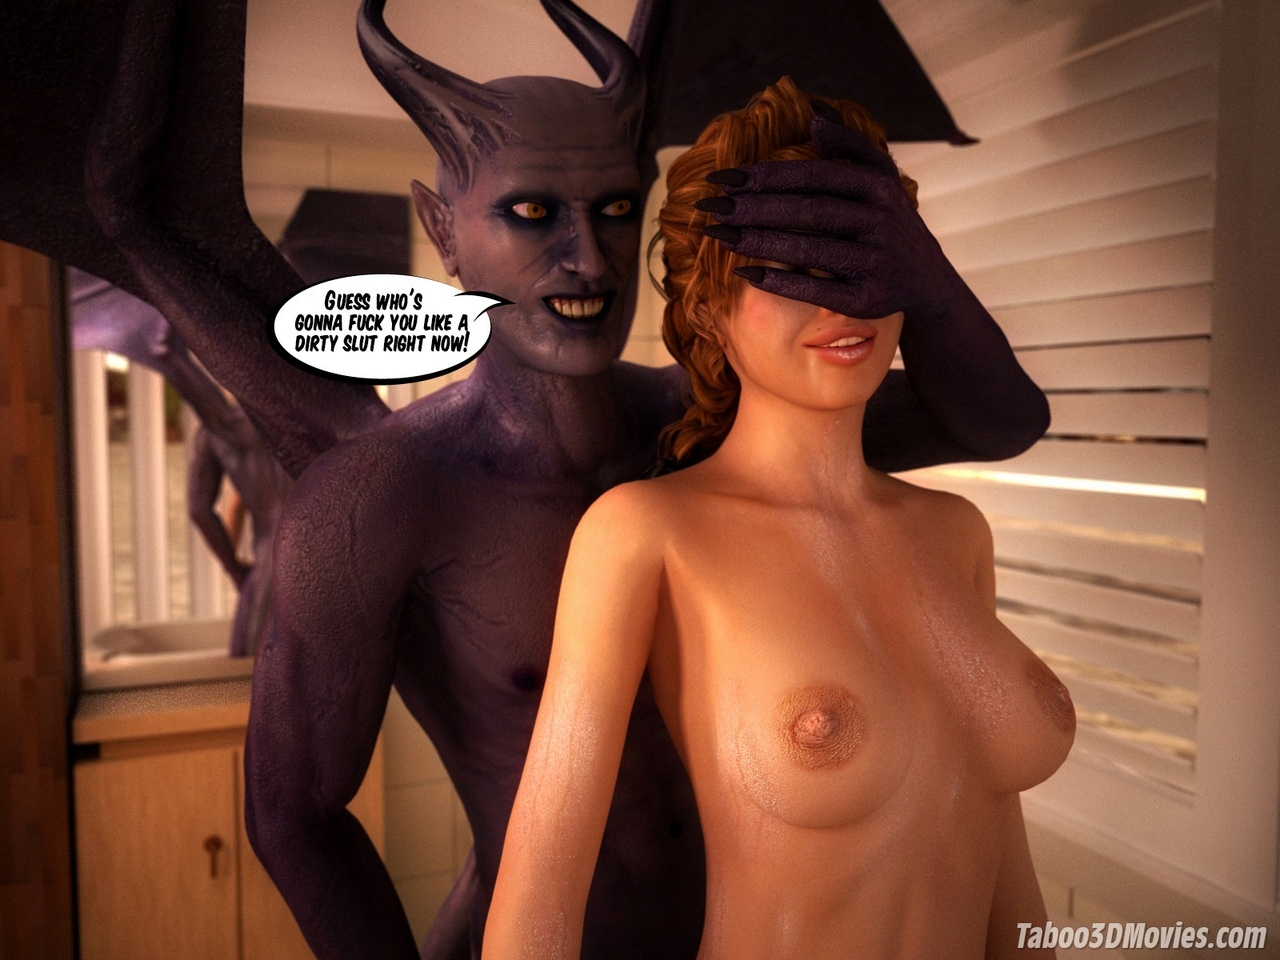 Demon-s-Slut 23 free sex comic